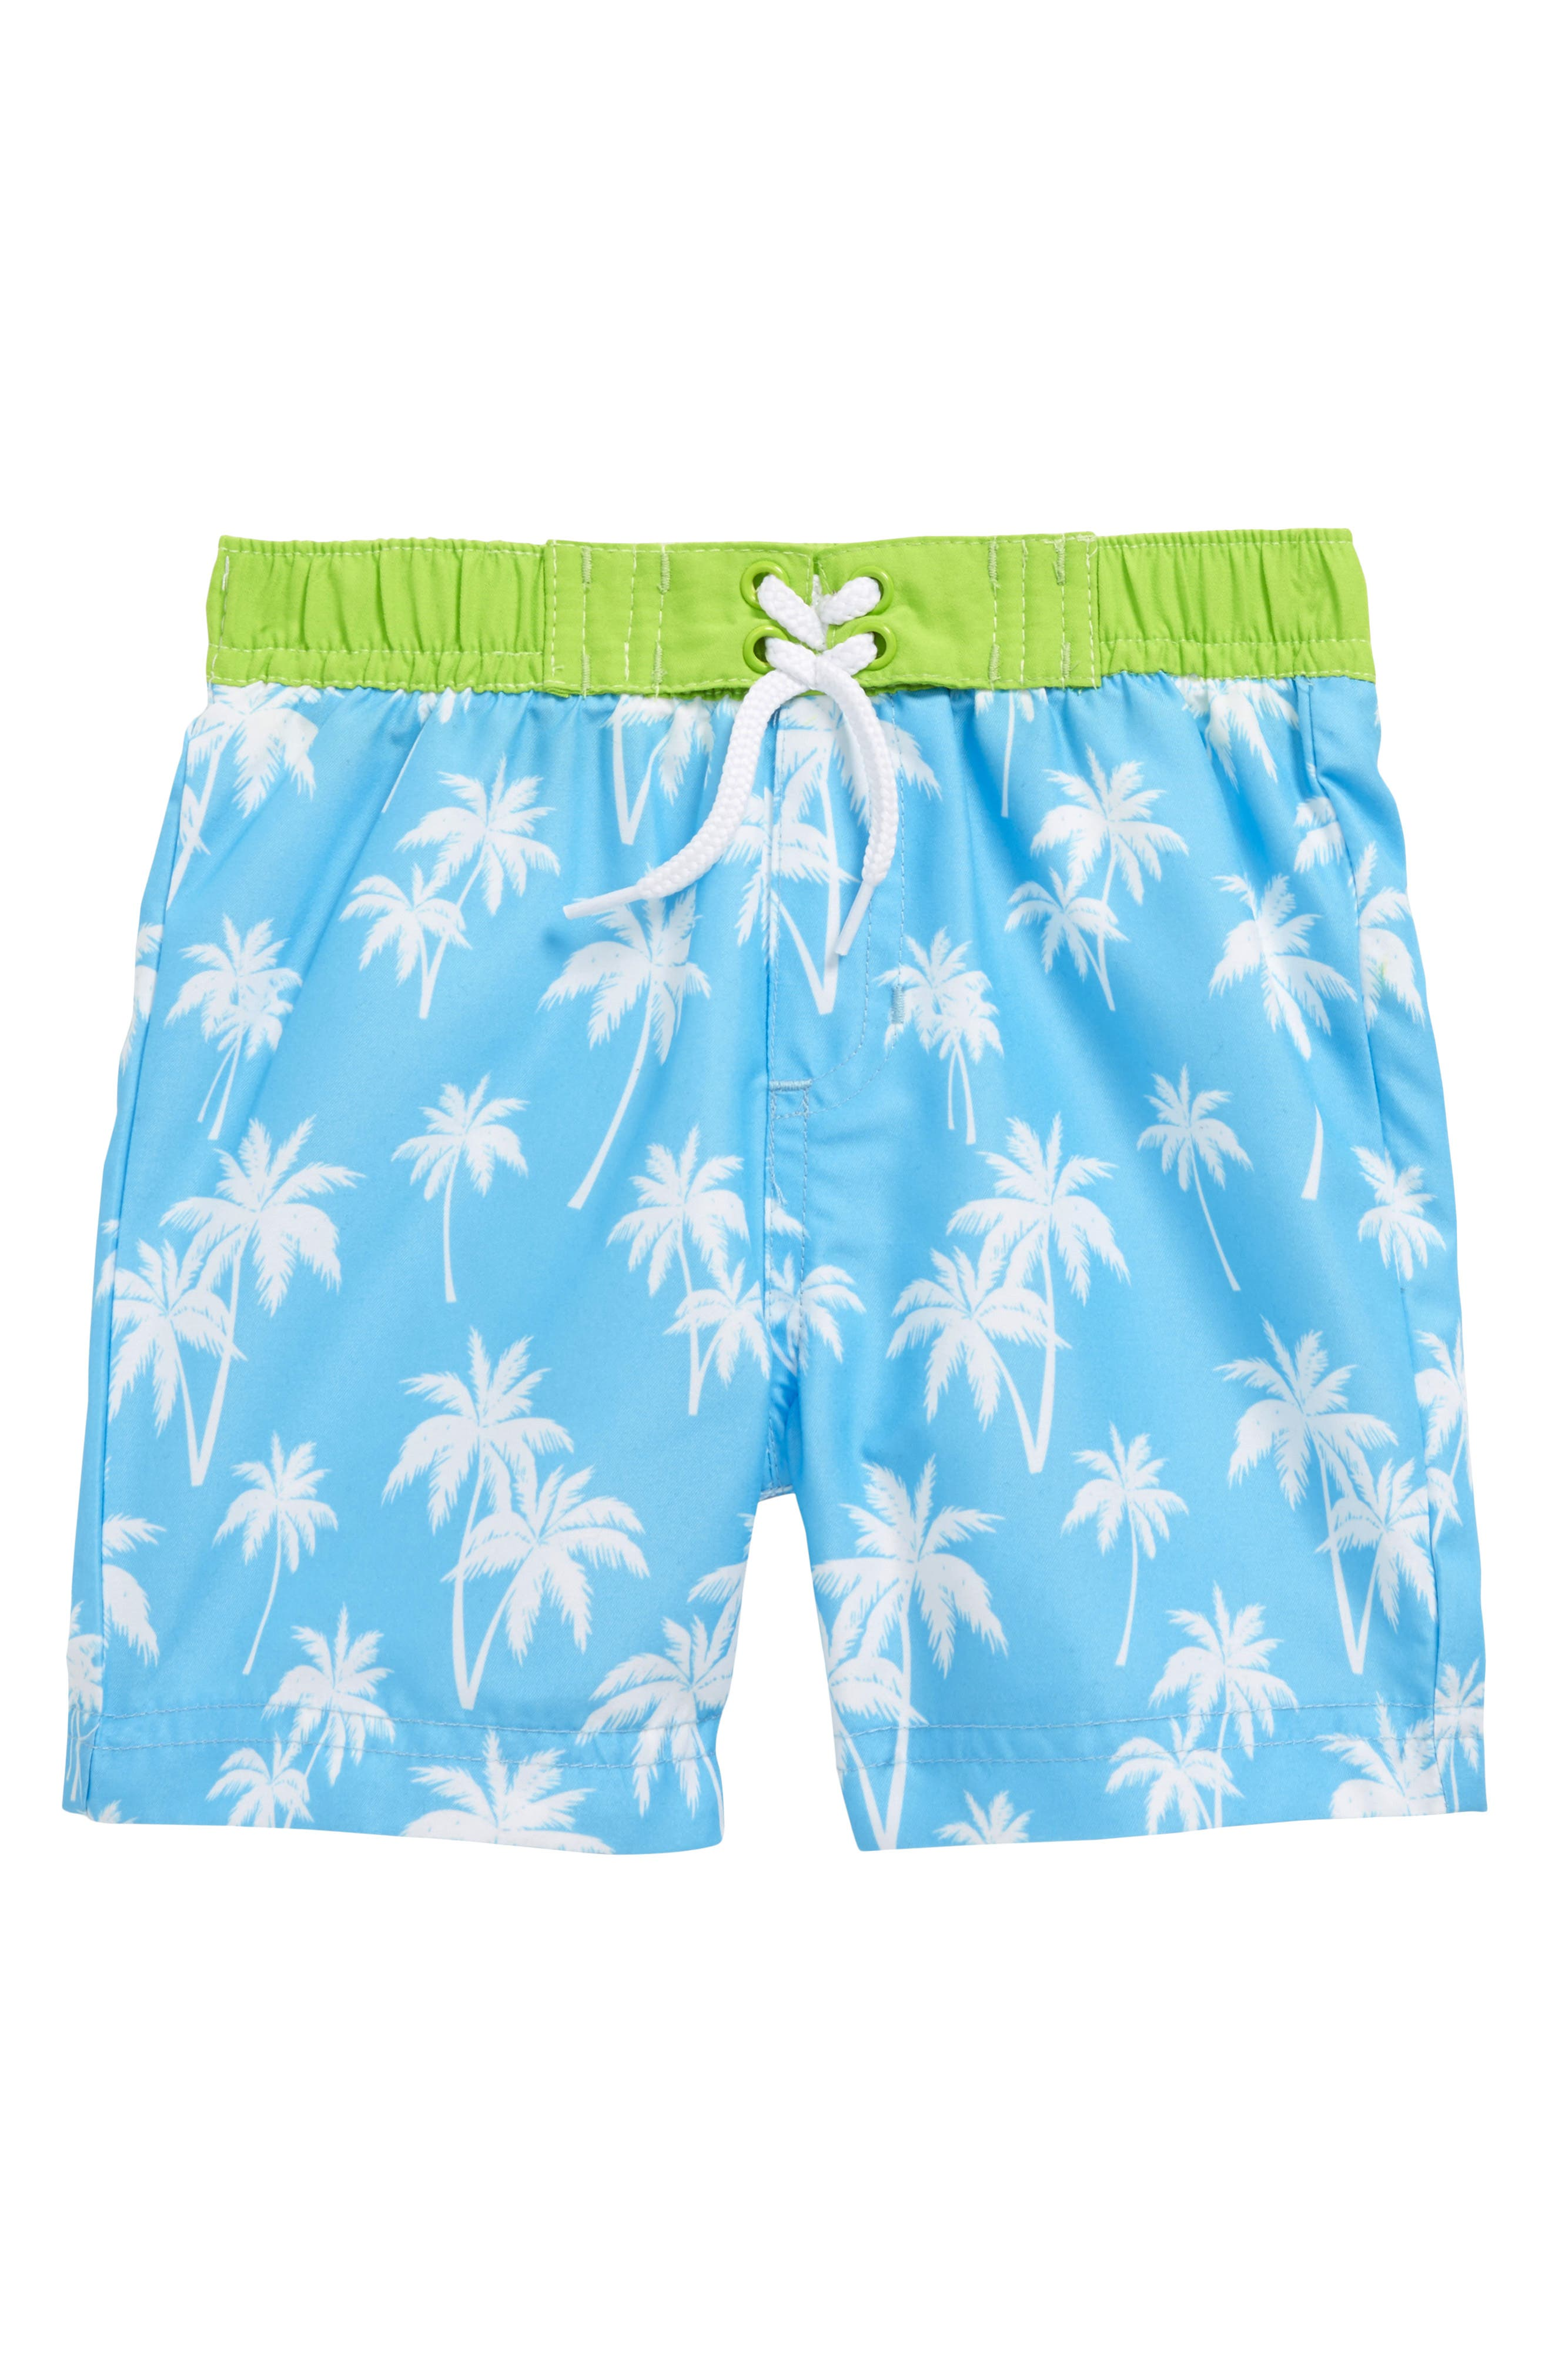 Palm Tree Swim Trunks,                         Main,                         color, 457